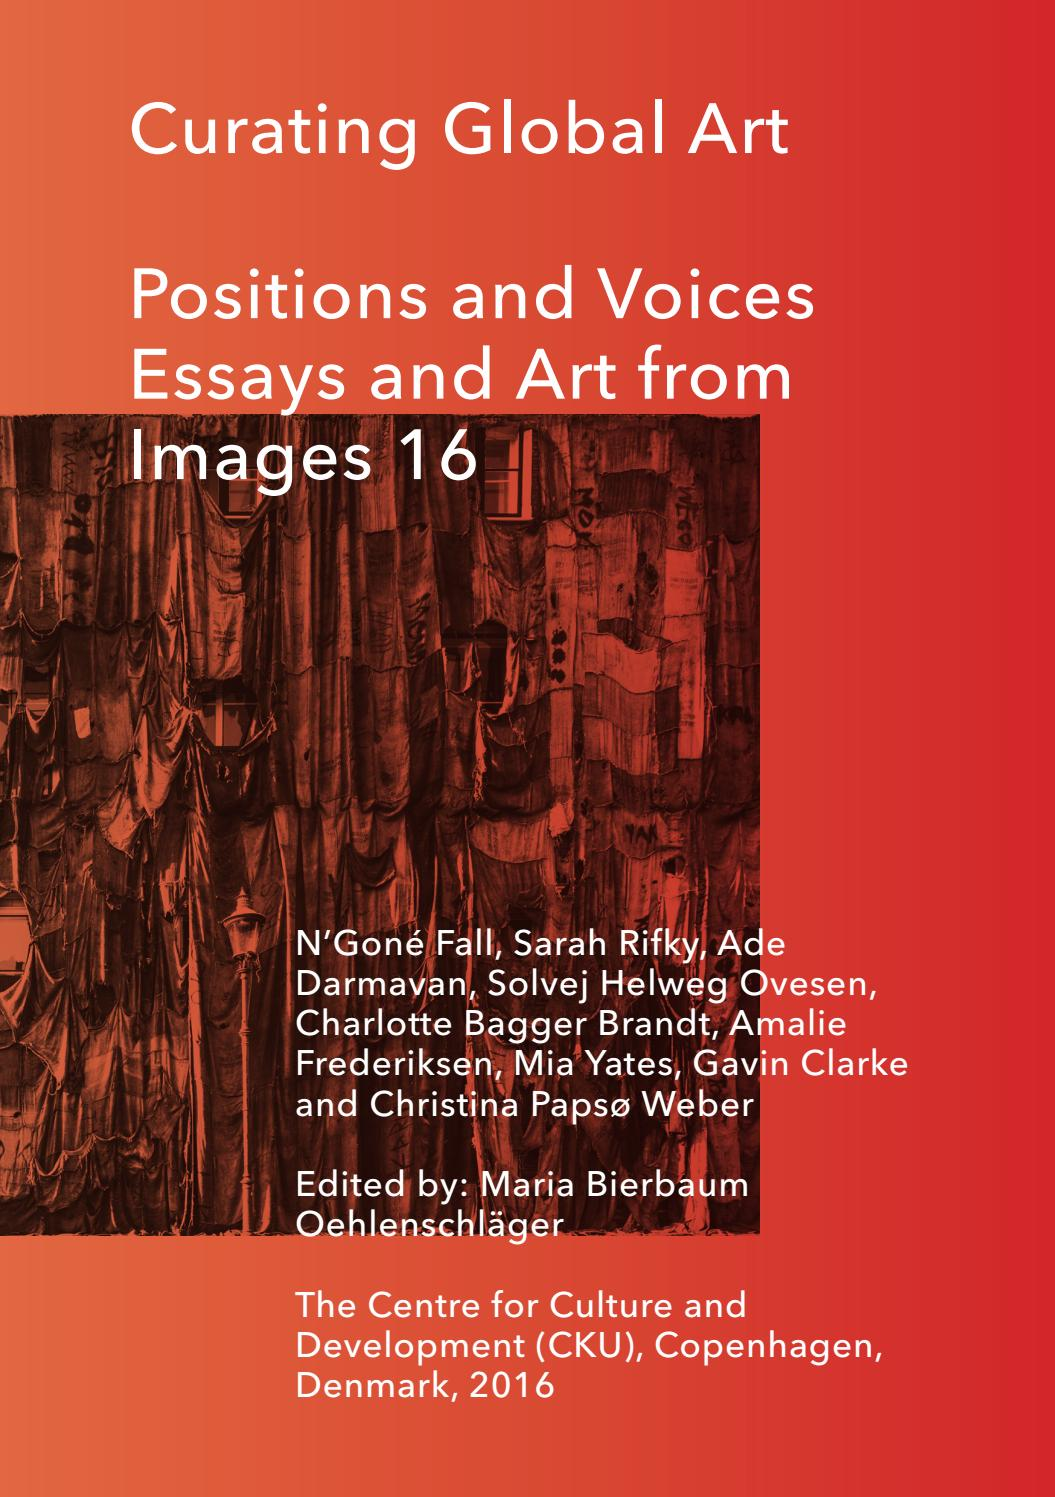 curating global art positions and voices essays and art from curating global art positions and voices essays and art from images 16 by centre for culture and development cku